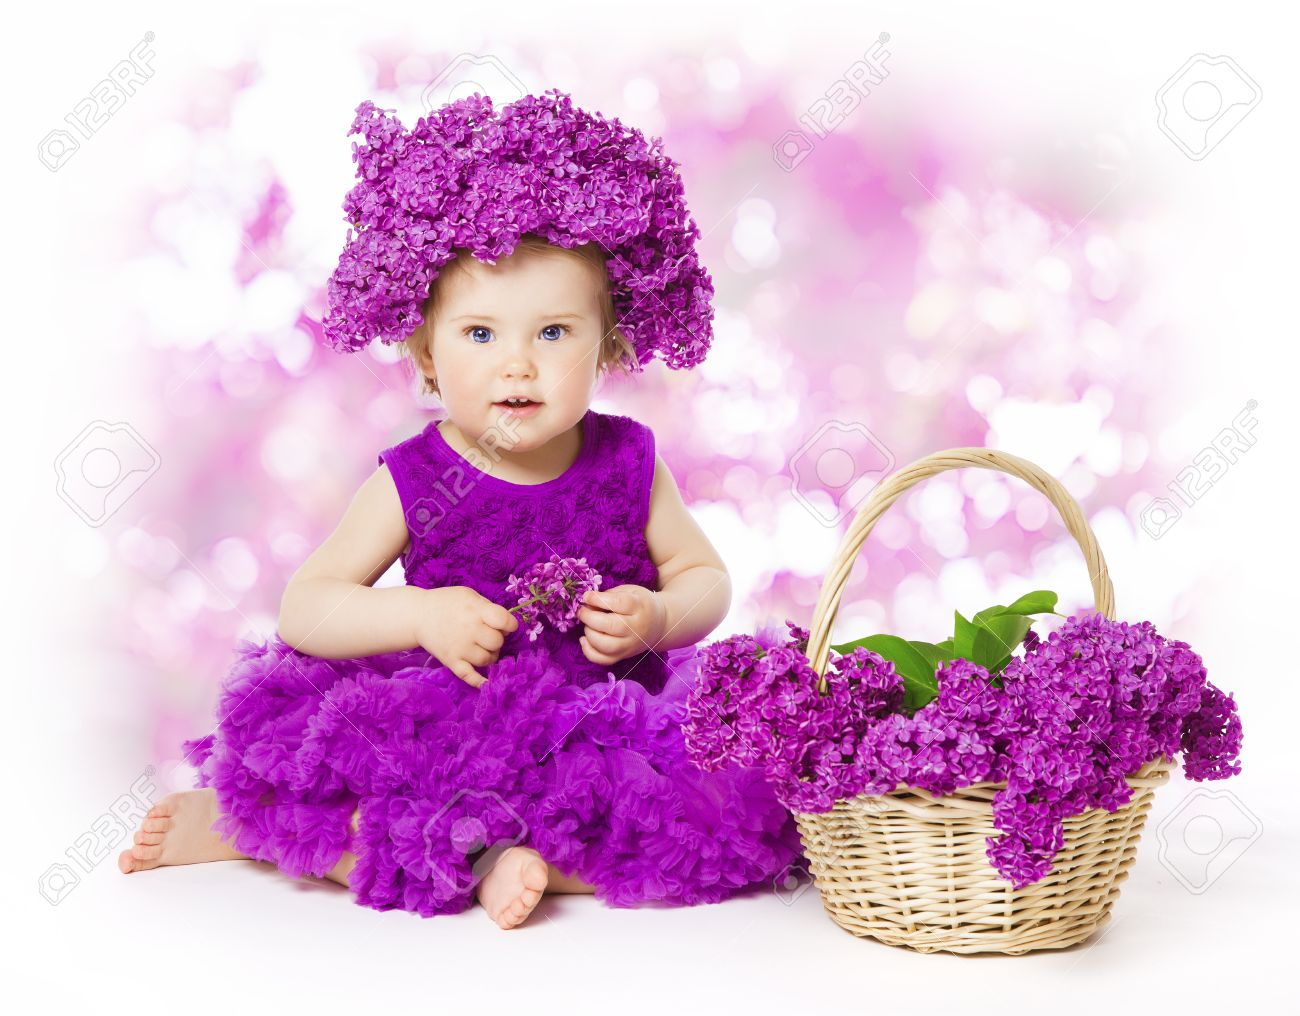 Baby girl lilac flowers little kid in flower crown hat child and bouquet basket